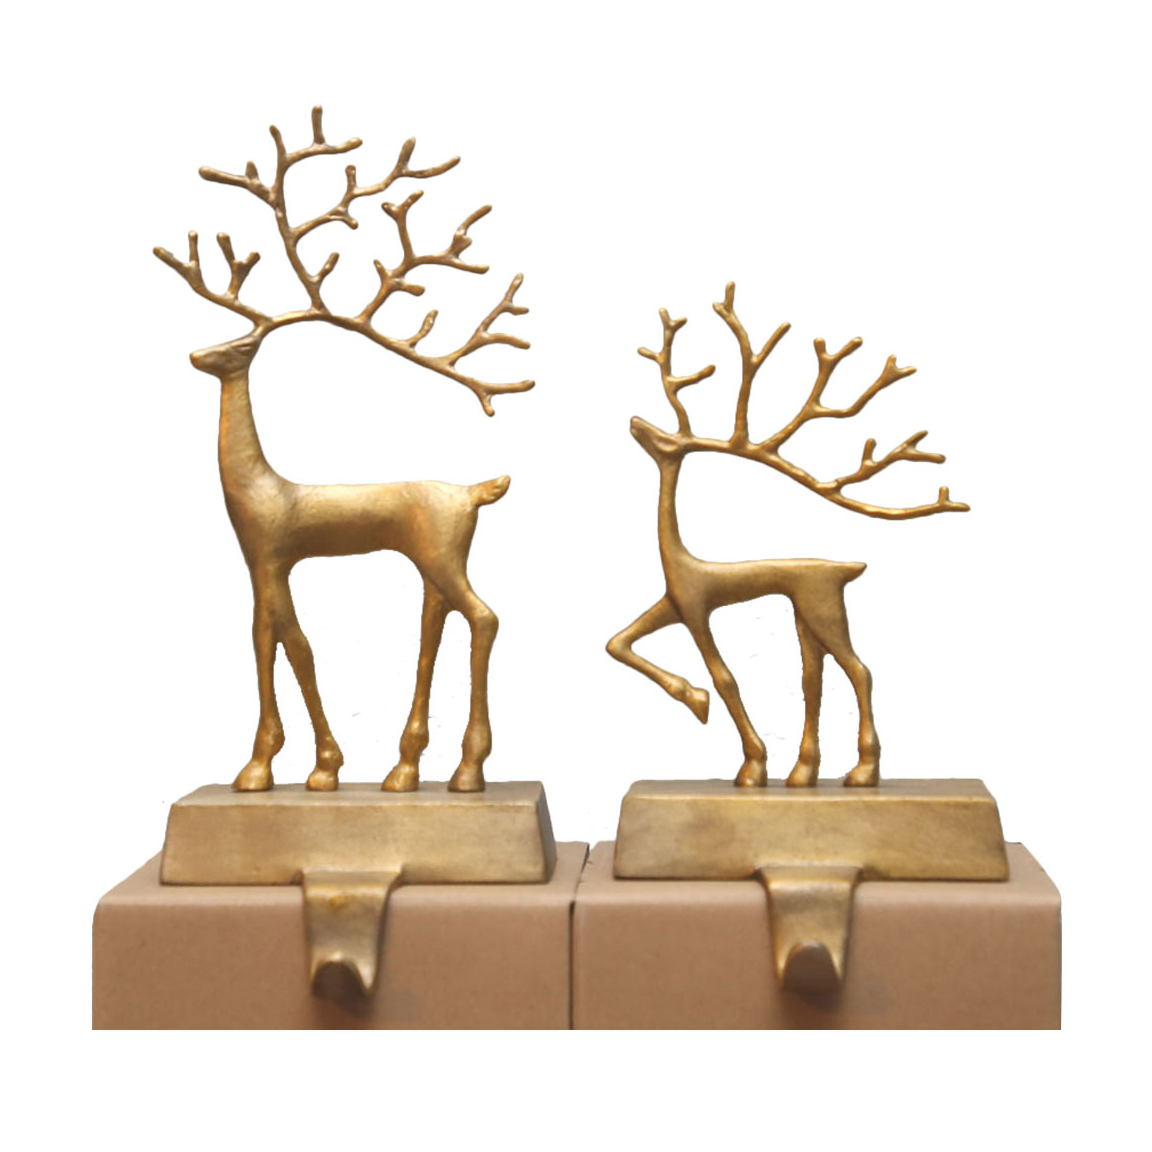 Christmas stocking holders - Pottery Barn Merry Reindeer Brass Stocking Holder Collection